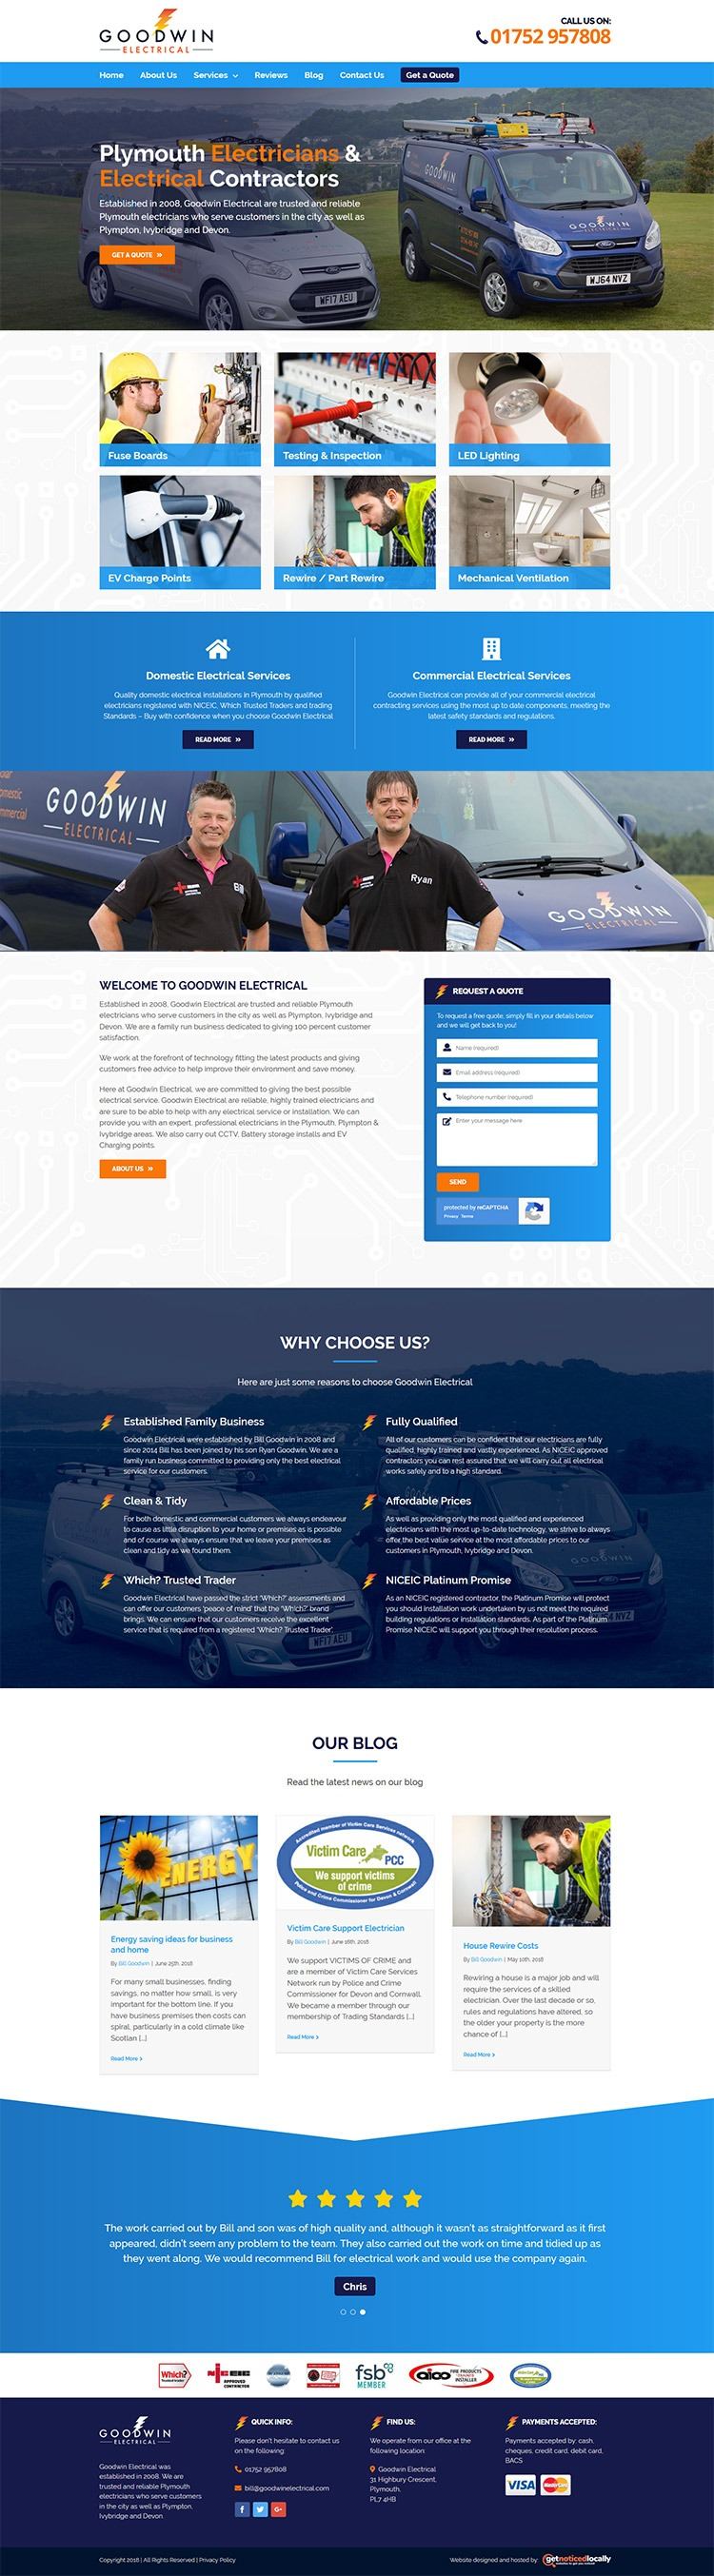 Goodwin Electrical website layout